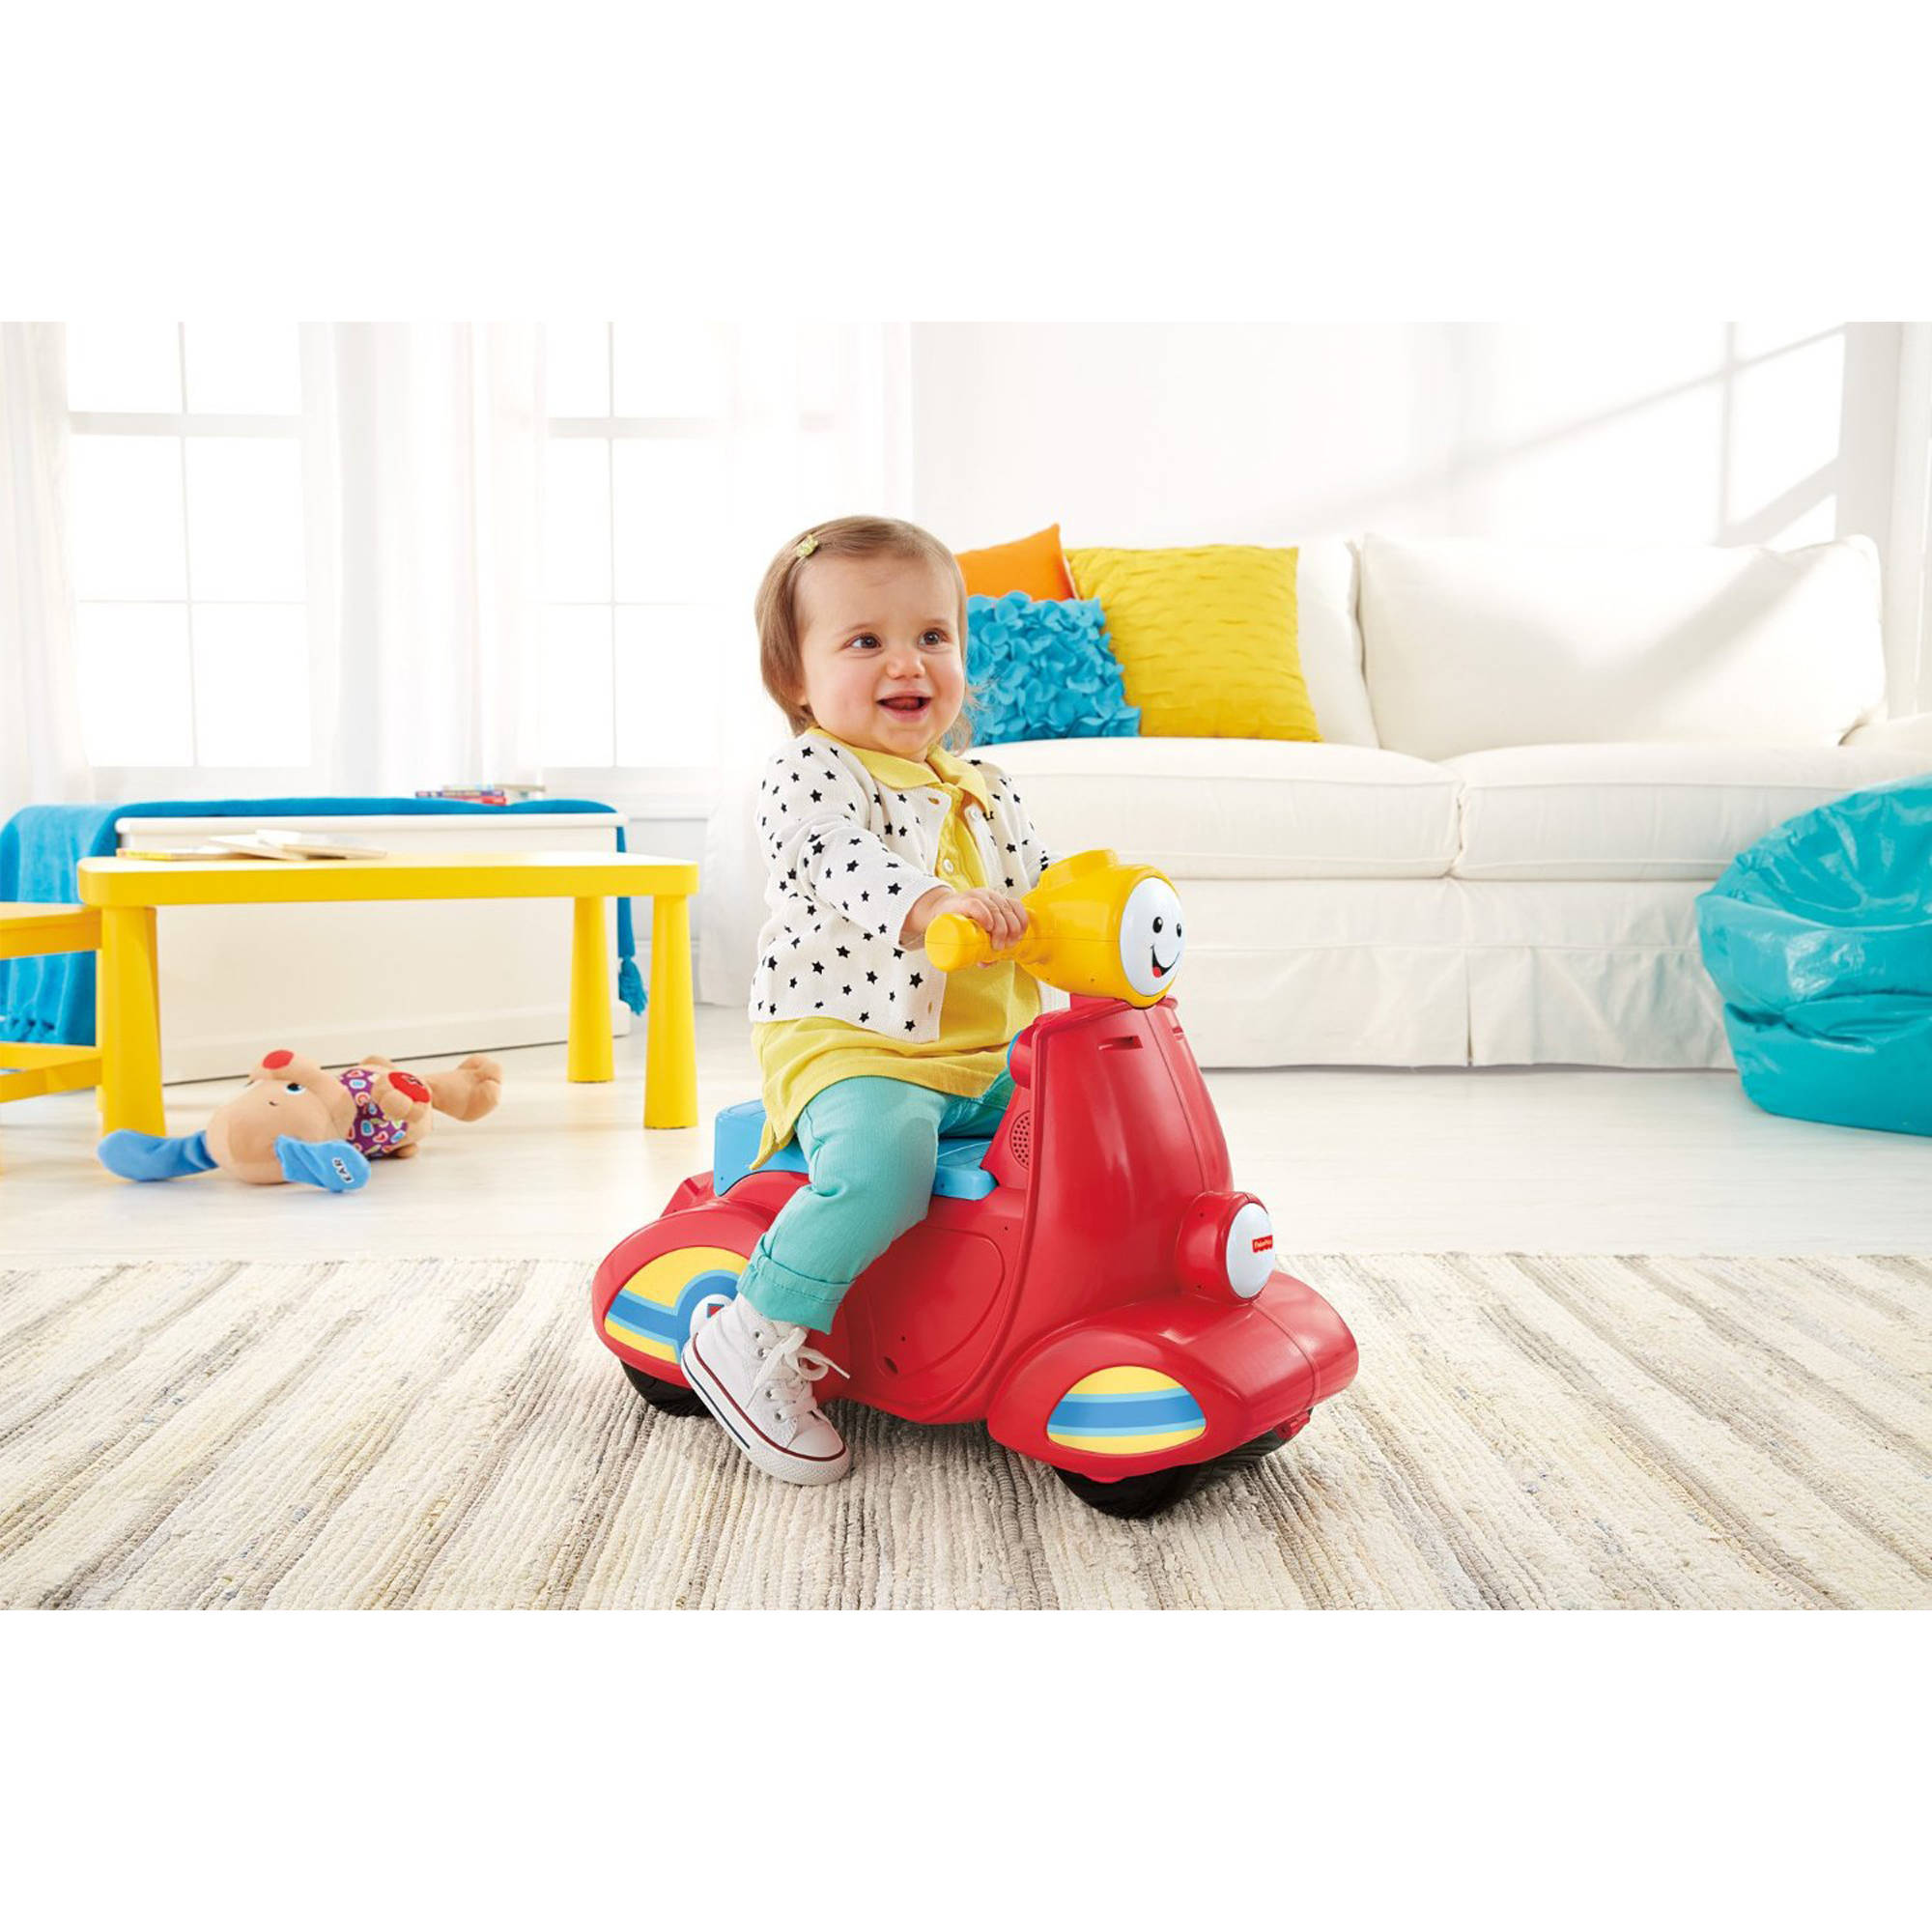 Ride Toys For Girls Toddlers Riding 1 Year Old Gifts 2 3 Baby